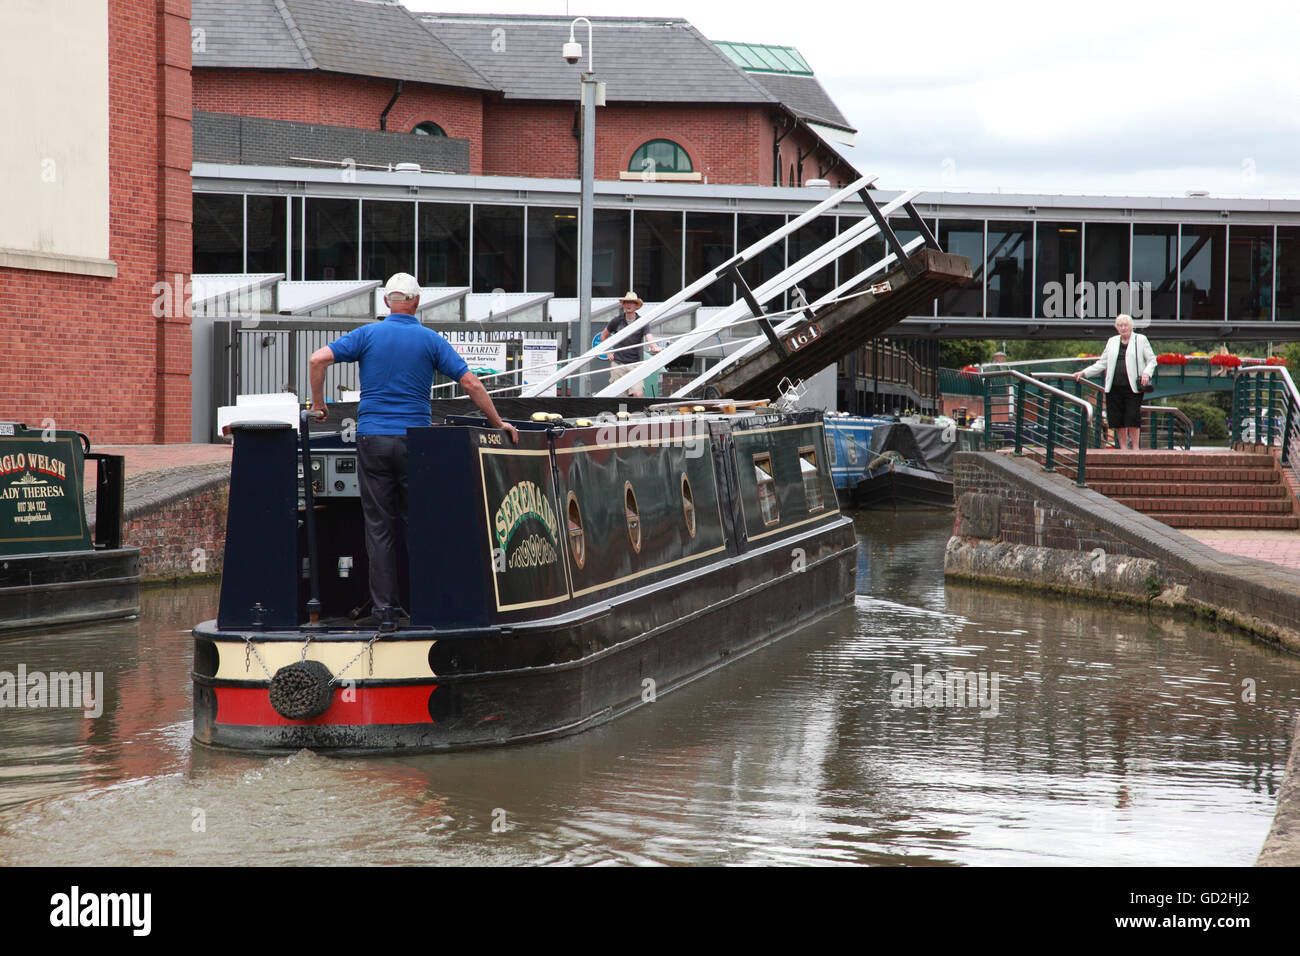 A narrowboat going under the lift bridge on the Oxford Canal in Banbury with the Castle Quay shopping centre on - Stock Image